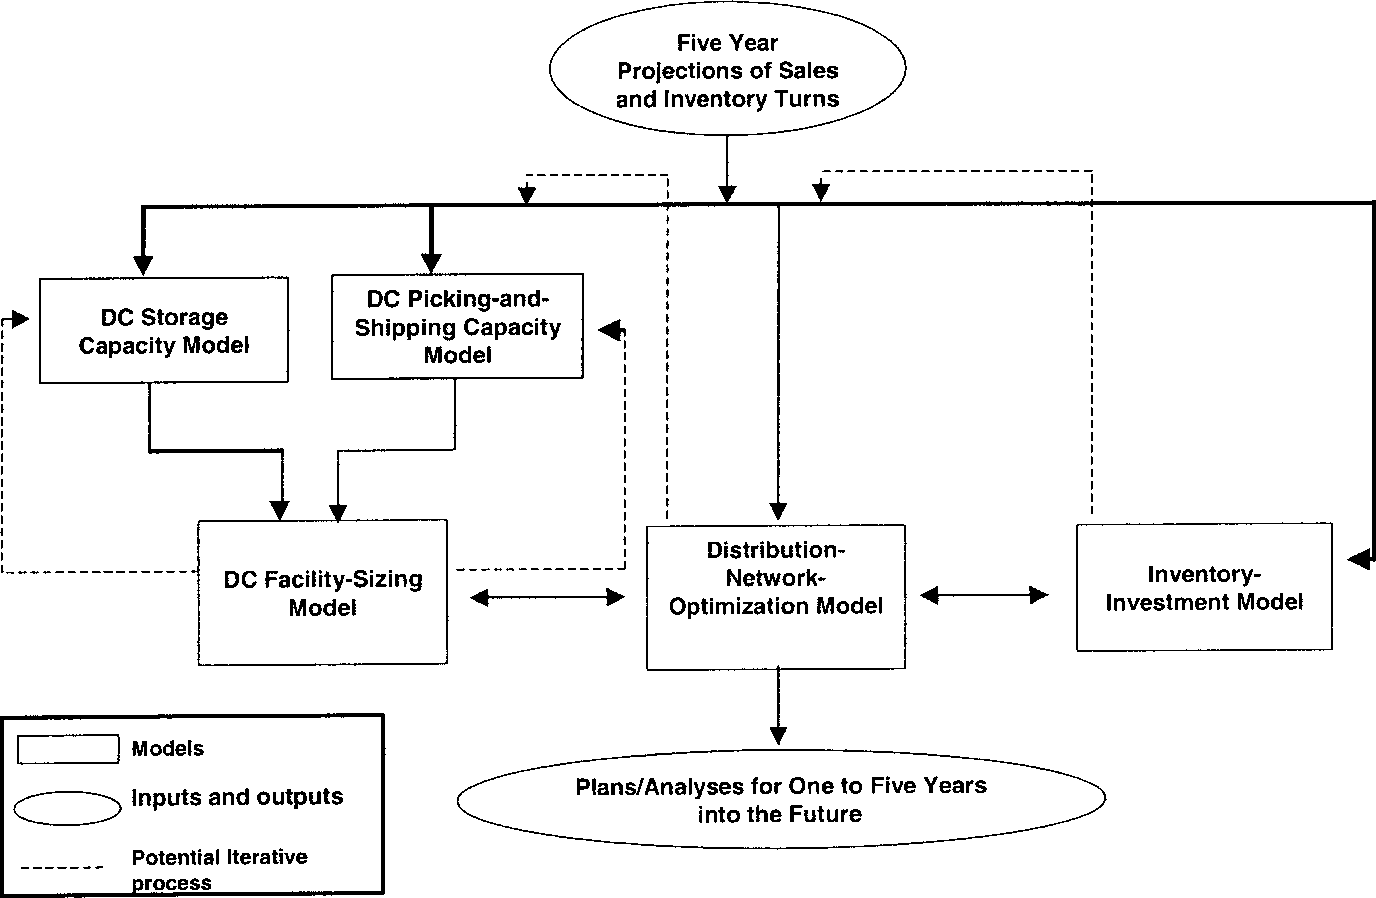 Figure 2 From Implementing A Distribution Network Decision Support System At Pfizer Warner Lambert Semantic Scholar